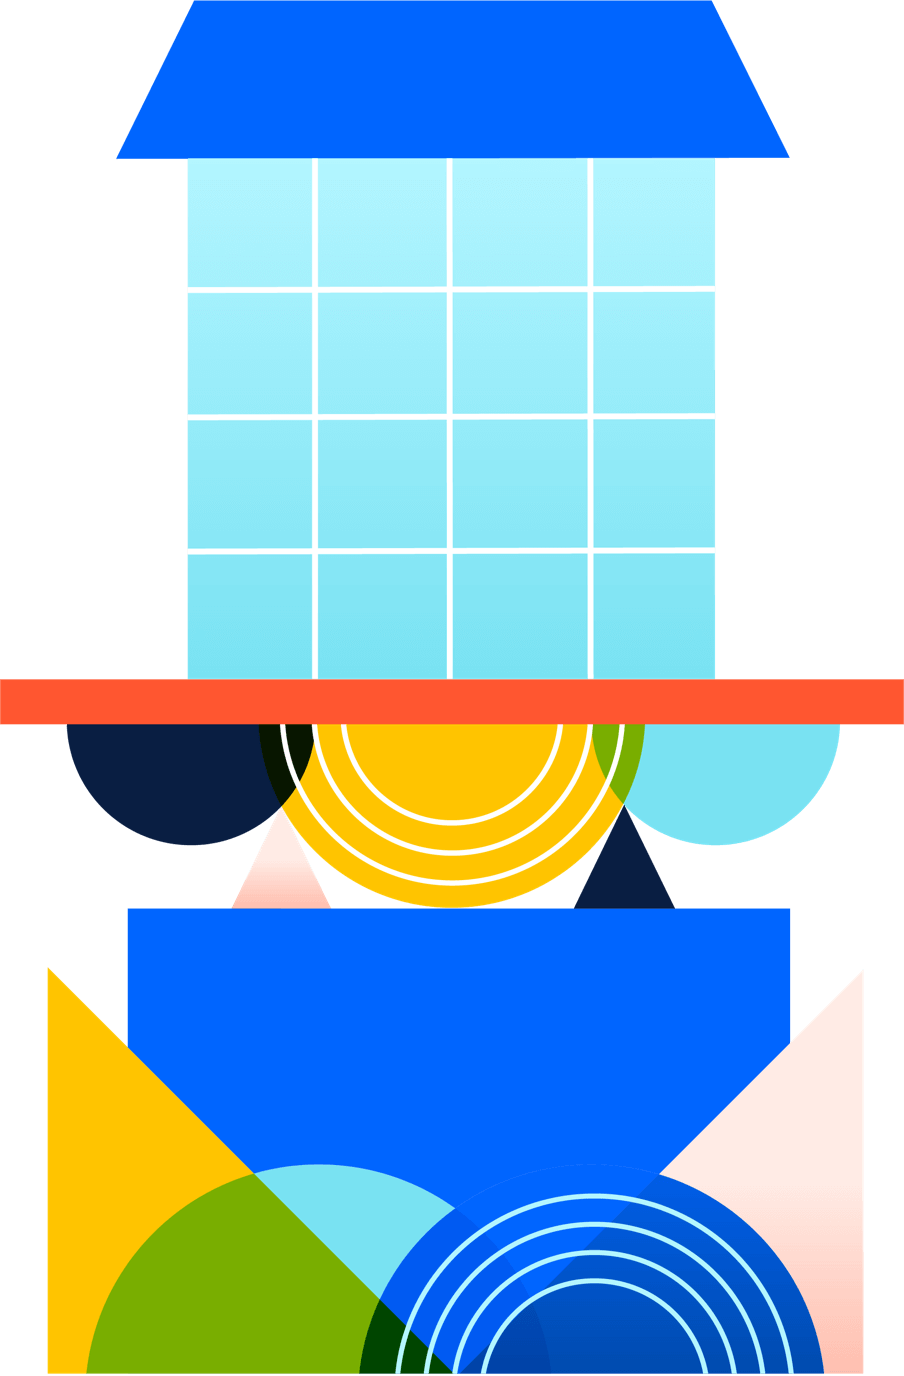 Illustration of shapes stacking